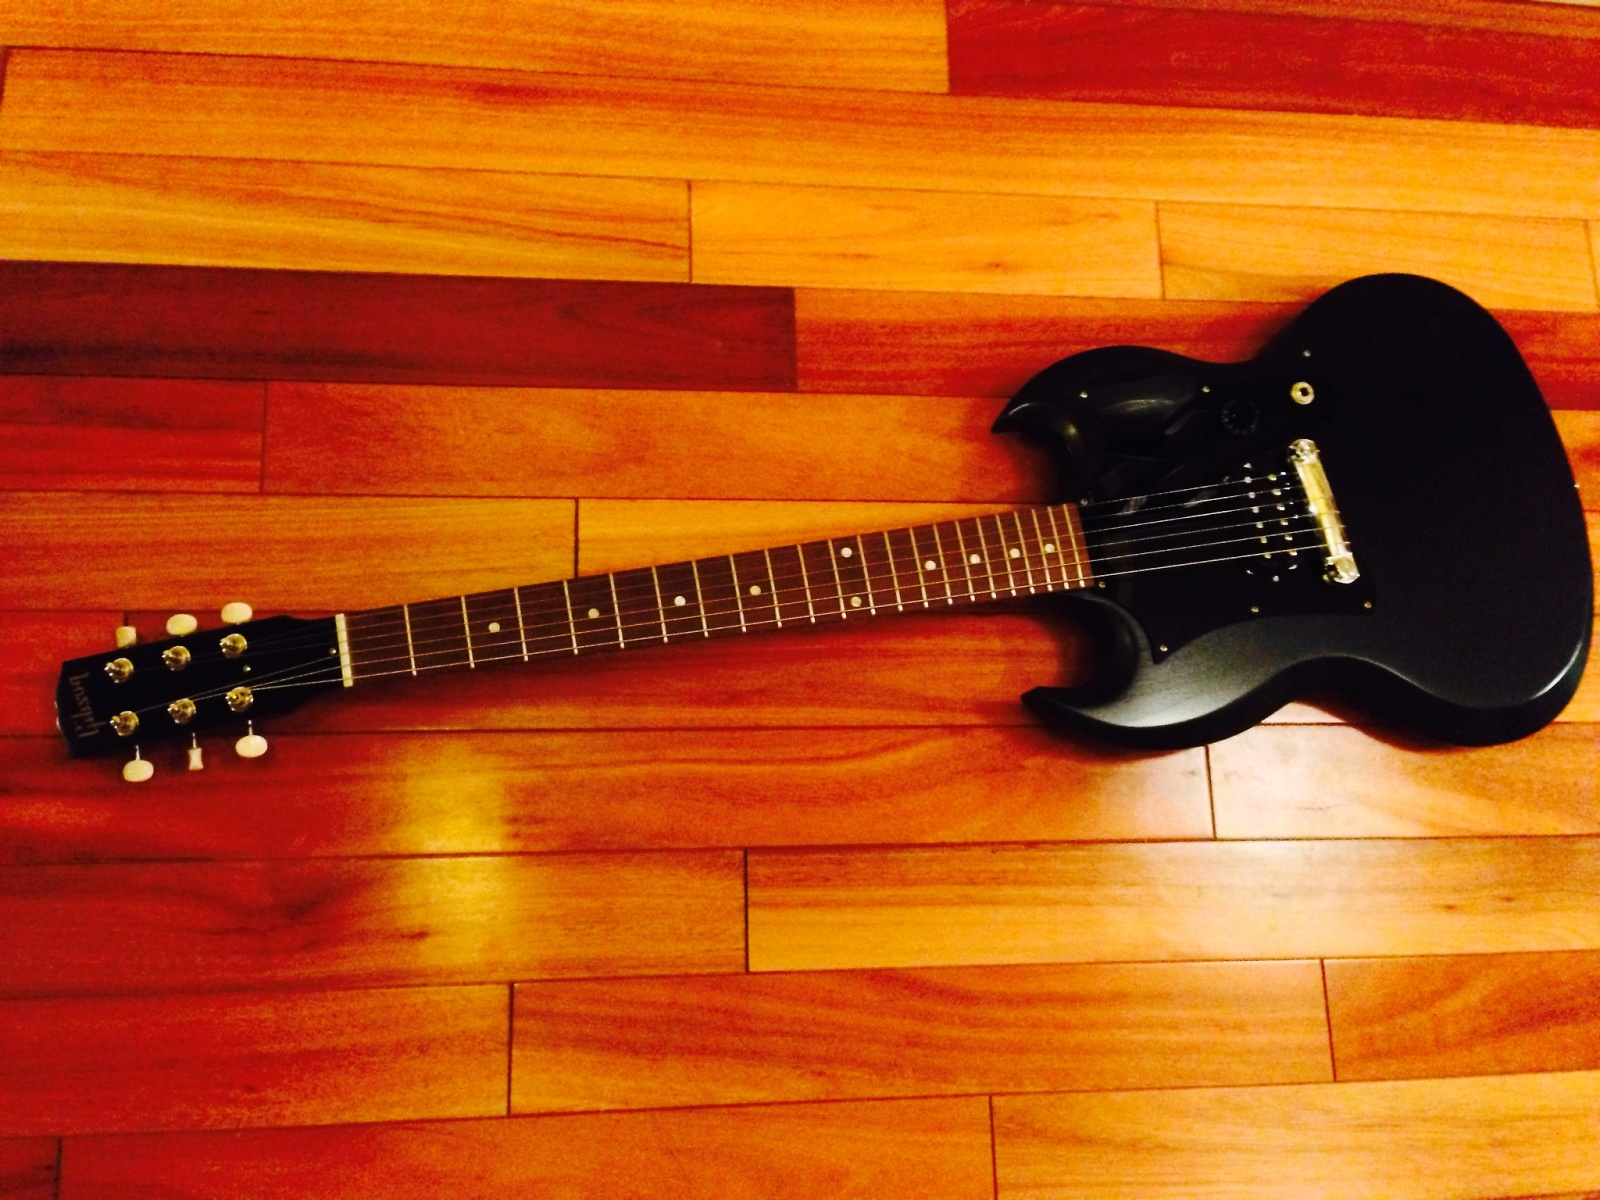 gibson melody maker history